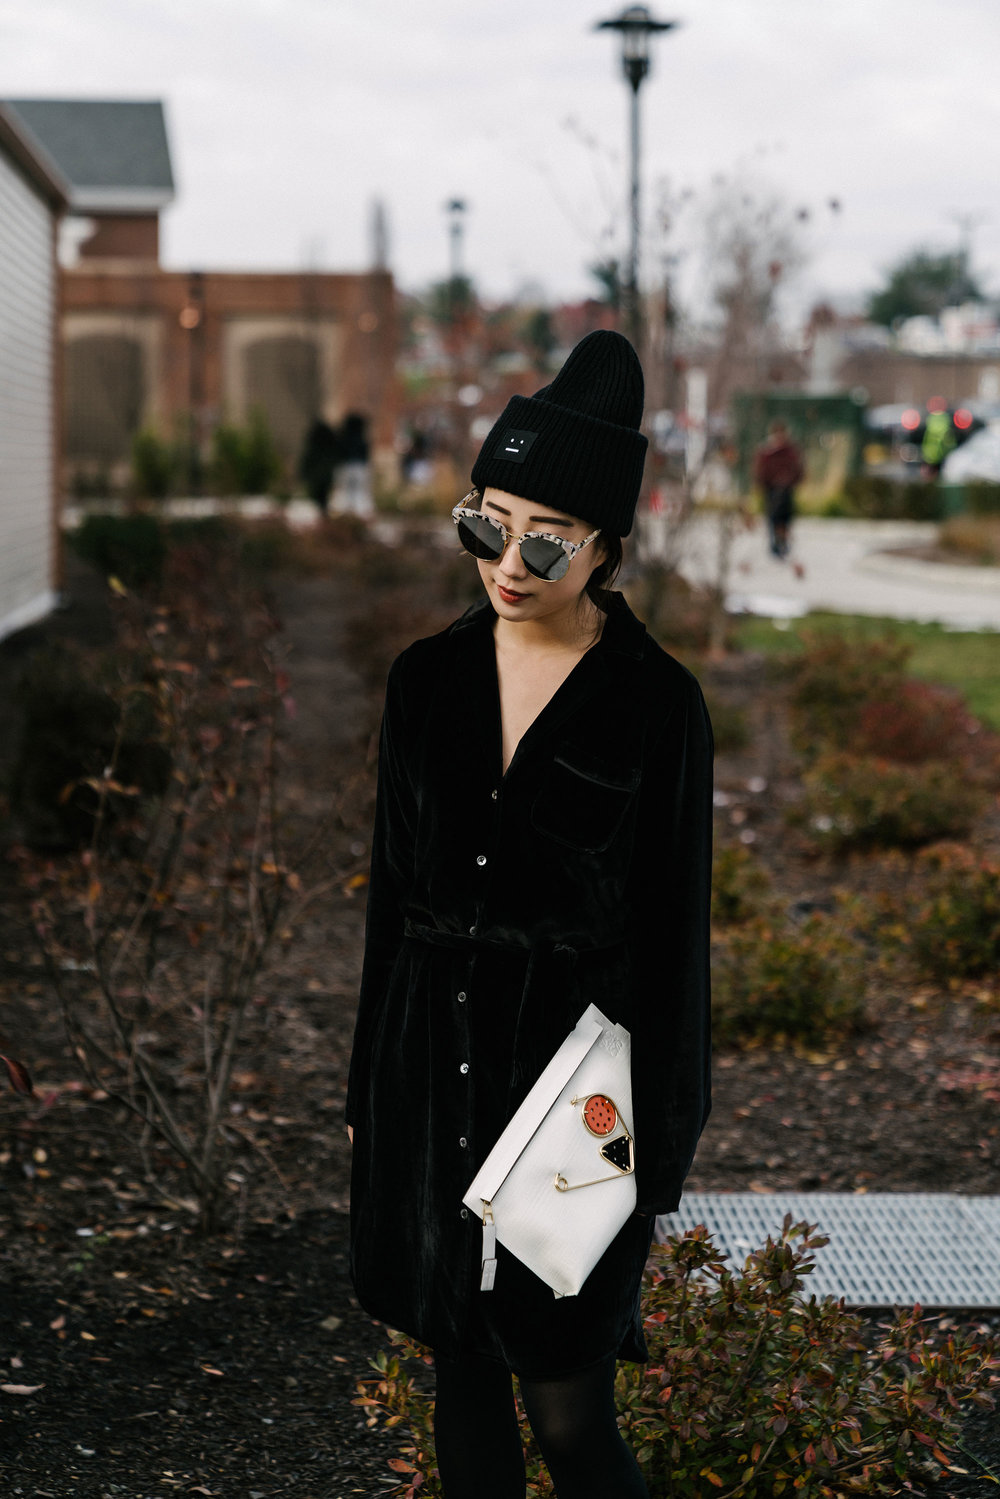 AG Jeans Dress , Loewe Clutch, Gentle Monster Sunglasses,  Acne Studios Beanie